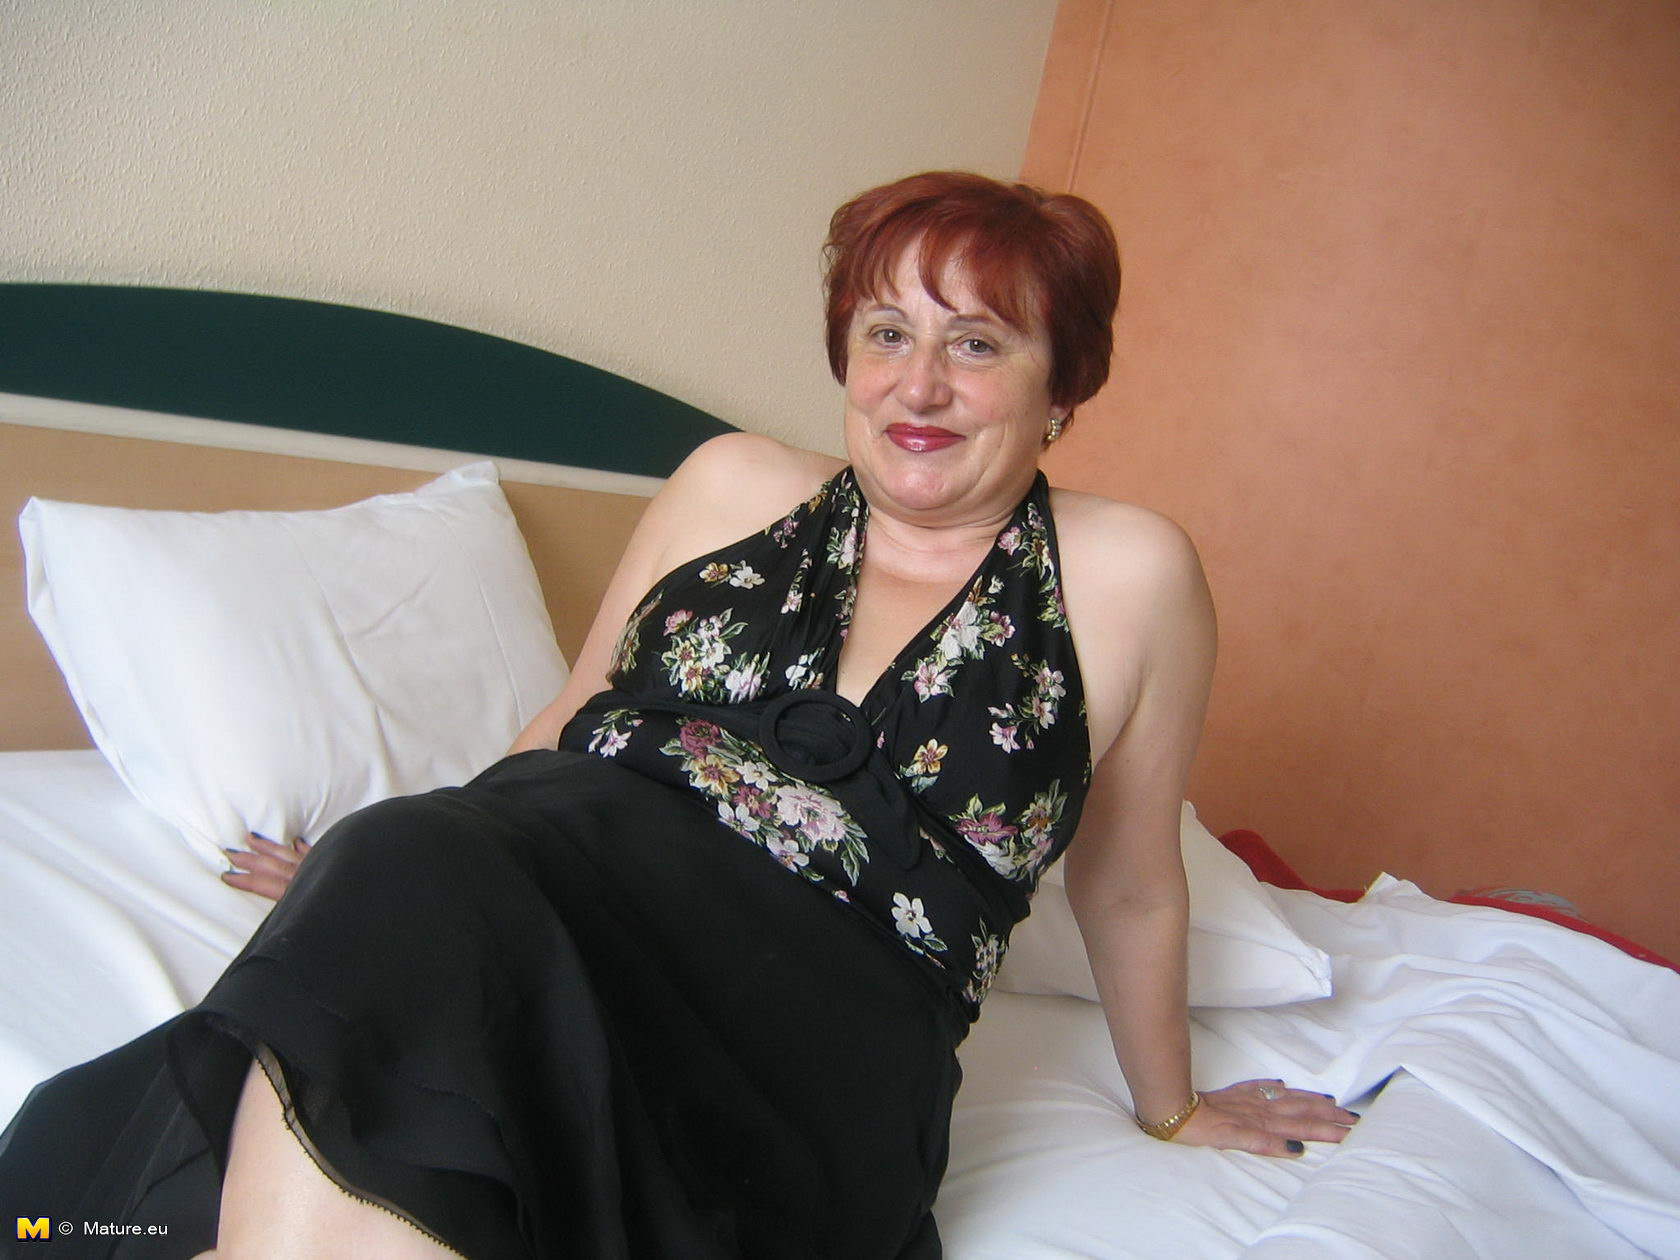 remarkable, natural busty mature toying in stockings opinion you are not